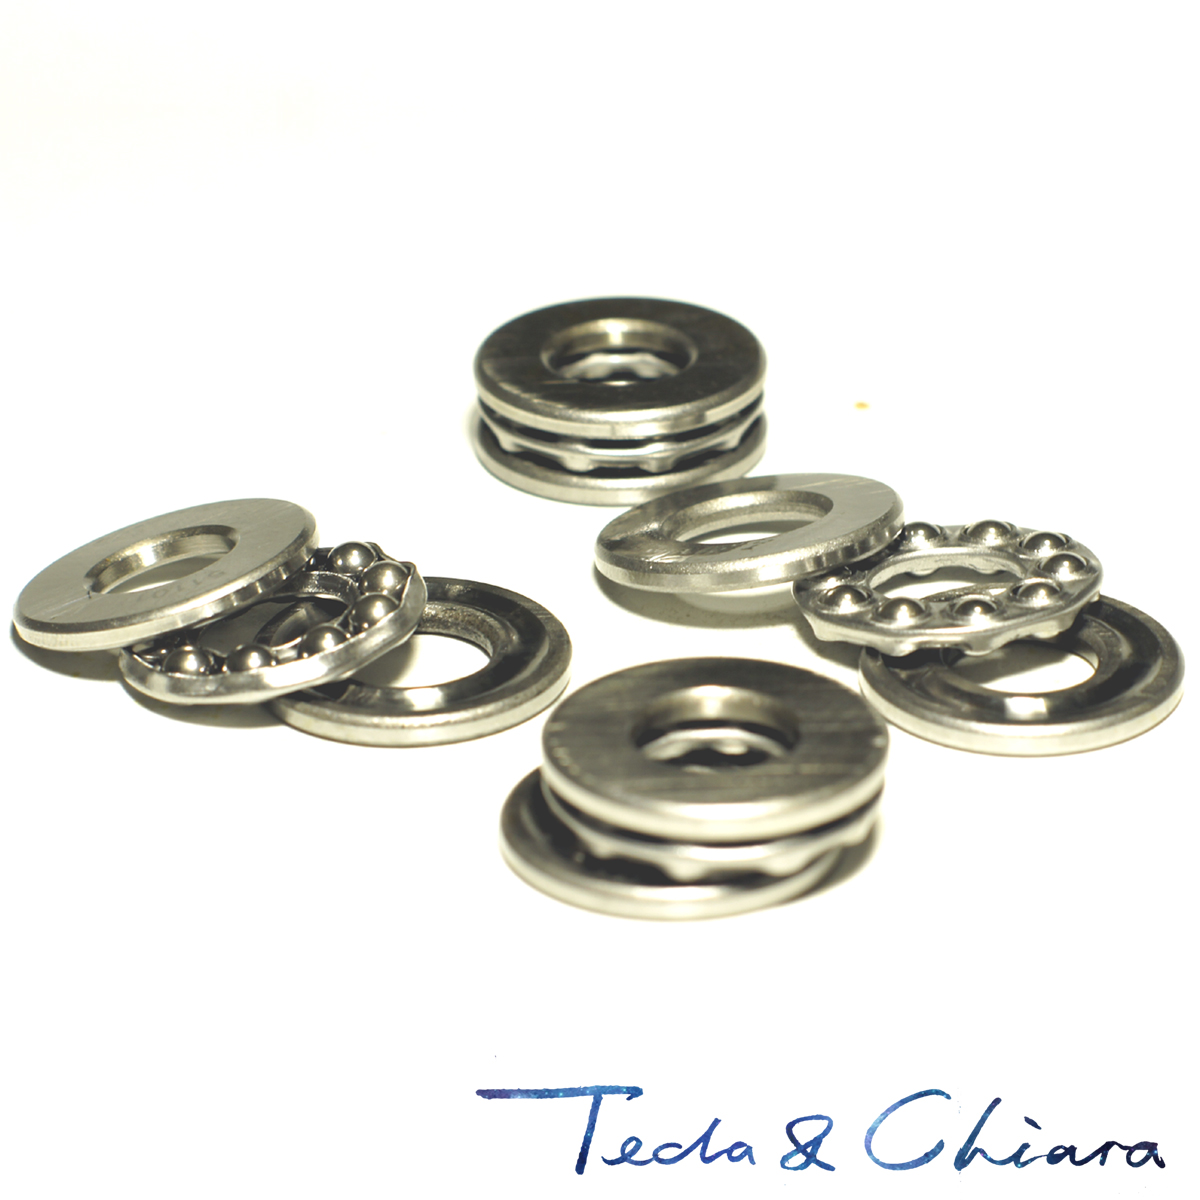 1Pc / 1Piece 51101 12 x 26 x 9 mm Axial Ball Thrust Bearing 3-Parts * 3-in-1 Plane High Quality